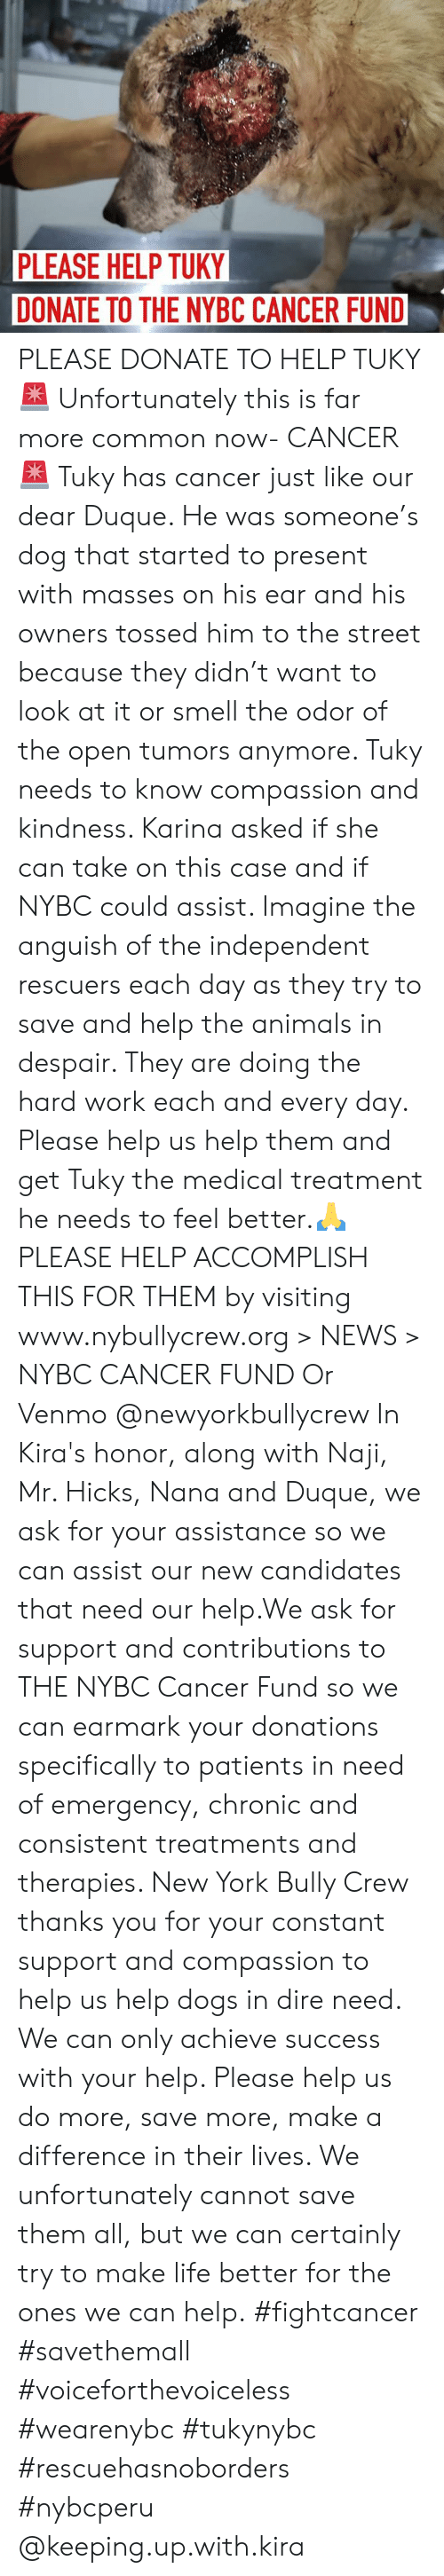 Animals, Dogs, and Life: PLEASE HELP TUKY  DONATE TO THE NYBC CANCER FUND PLEASE DONATE TO HELP TUKY🚨 Unfortunately this is far more common now- CANCER🚨 Tuky has cancer just like our dear Duque. He was someone's dog that started to present with masses on his ear and his owners tossed him to the street because they didn't want to look at it or smell the odor of the open tumors anymore. Tuky needs to know compassion and kindness. Karina asked if she can take on this case and if NYBC could assist. Imagine the anguish of the independent rescuers each day as they try to save and help the animals in despair.  They are doing the hard work each and every day. Please help us help them and get Tuky the medical treatment he needs to feel better.🙏 PLEASE HELP ACCOMPLISH THIS FOR THEM by visiting www.nybullycrew.org > NEWS > NYBC CANCER FUND Or Venmo @newyorkbullycrew  In Kira's honor, along with Naji, Mr. Hicks, Nana and Duque, we ask for your assistance so we can assist our new candidates that need our help.We ask for support and contributions to THE NYBC Cancer Fund so we can earmark your donations specifically to patients in need of emergency, chronic and consistent treatments and therapies. New York Bully Crew thanks you for your constant support and compassion to help us help dogs in dire need. We can only achieve success with your help. Please help us do more, save more, make a difference in their lives. We unfortunately cannot save them all, but we can certainly try to make life better for the ones we can help.  #fightcancer #savethemall #voiceforthevoiceless #wearenybc #tukynybc #rescuehasnoborders #nybcperu @keeping.up.with.kira